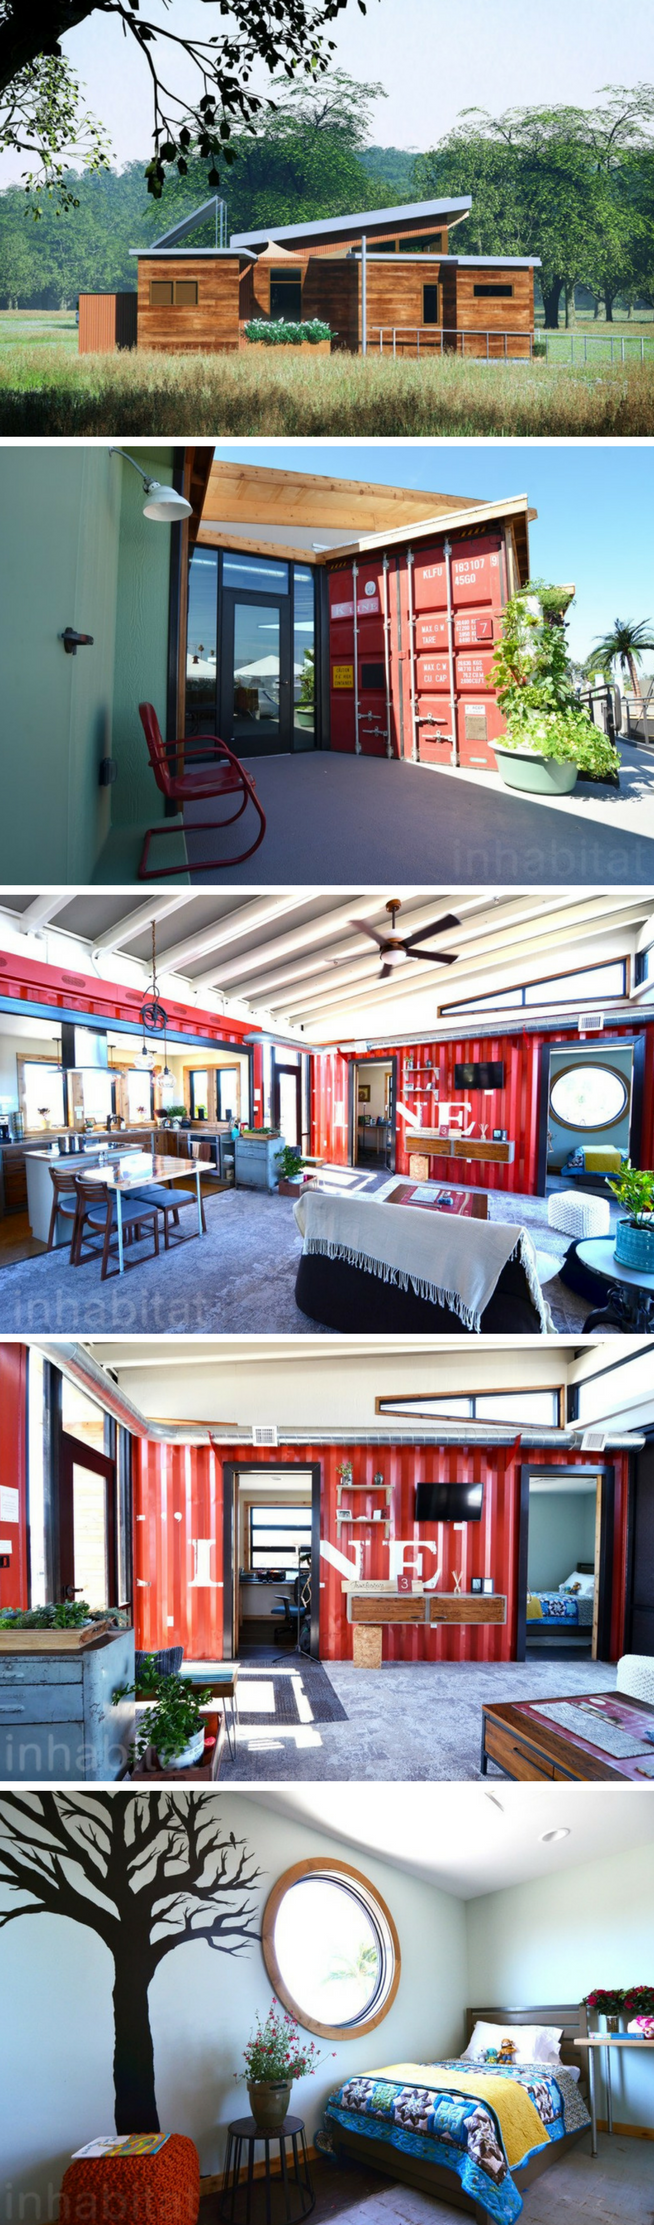 container home designers%0A Best     Shipping container conversions ideas on Pinterest   Shipping container  design  Shipping container buildings and Shipping containers